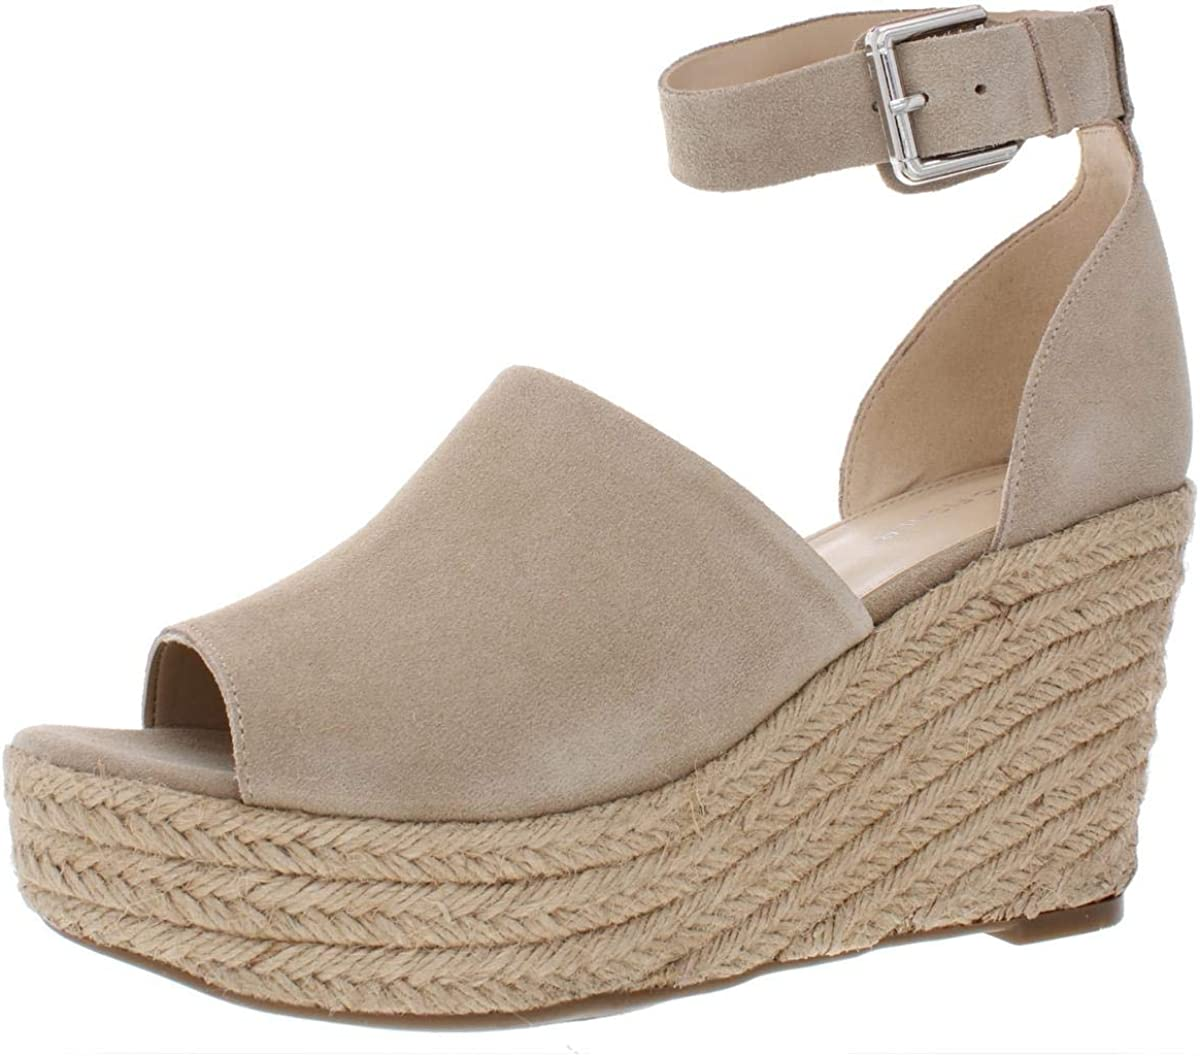 Dealing full price reduction Marc Fisher Womens Cala Leather Casual Peep Beige Shipping included Toe Platform